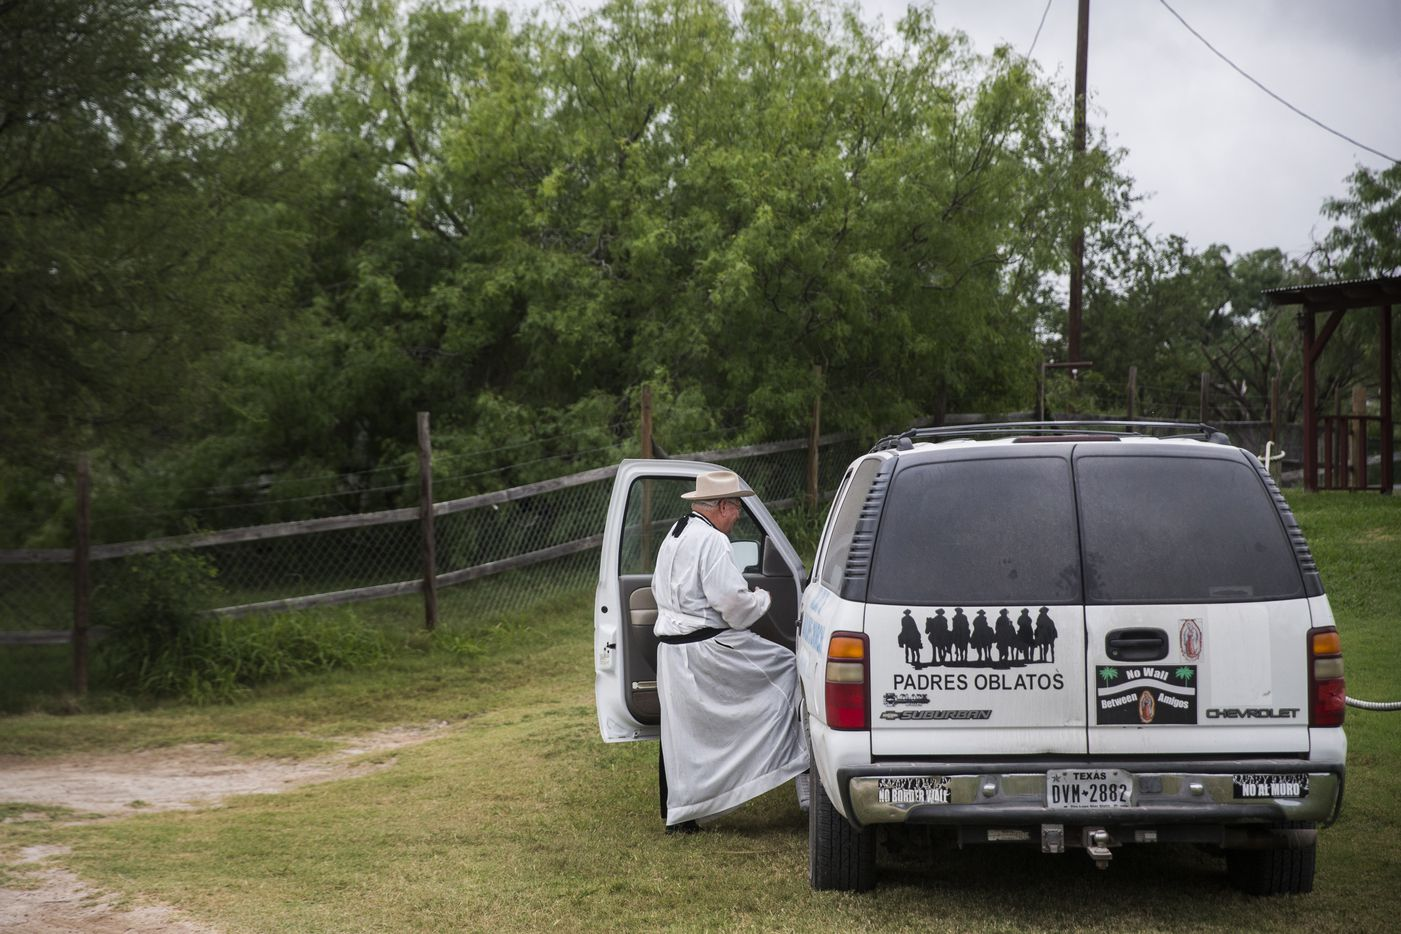 Father Roy Snipes climbs into his white Chevy Suburban after a boat ride on the Rio Grande.